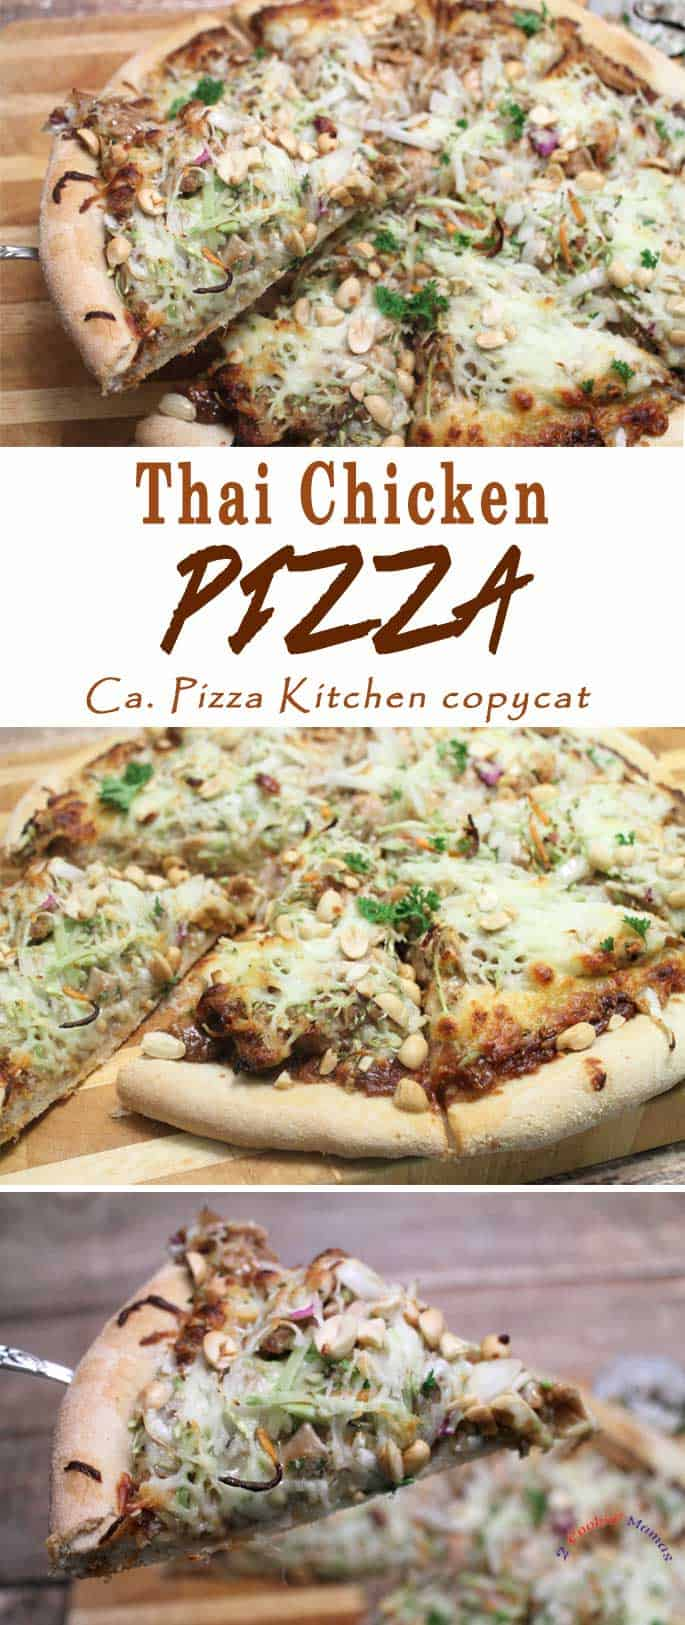 If you love Thai flavors & pizza then this Thai Chicken Pizza is for you! Chicken in peanut sauce with bean sprouts, carrots & peanuts then topped with mozzarella. #pizza #chicken #thai #dinner #recipe